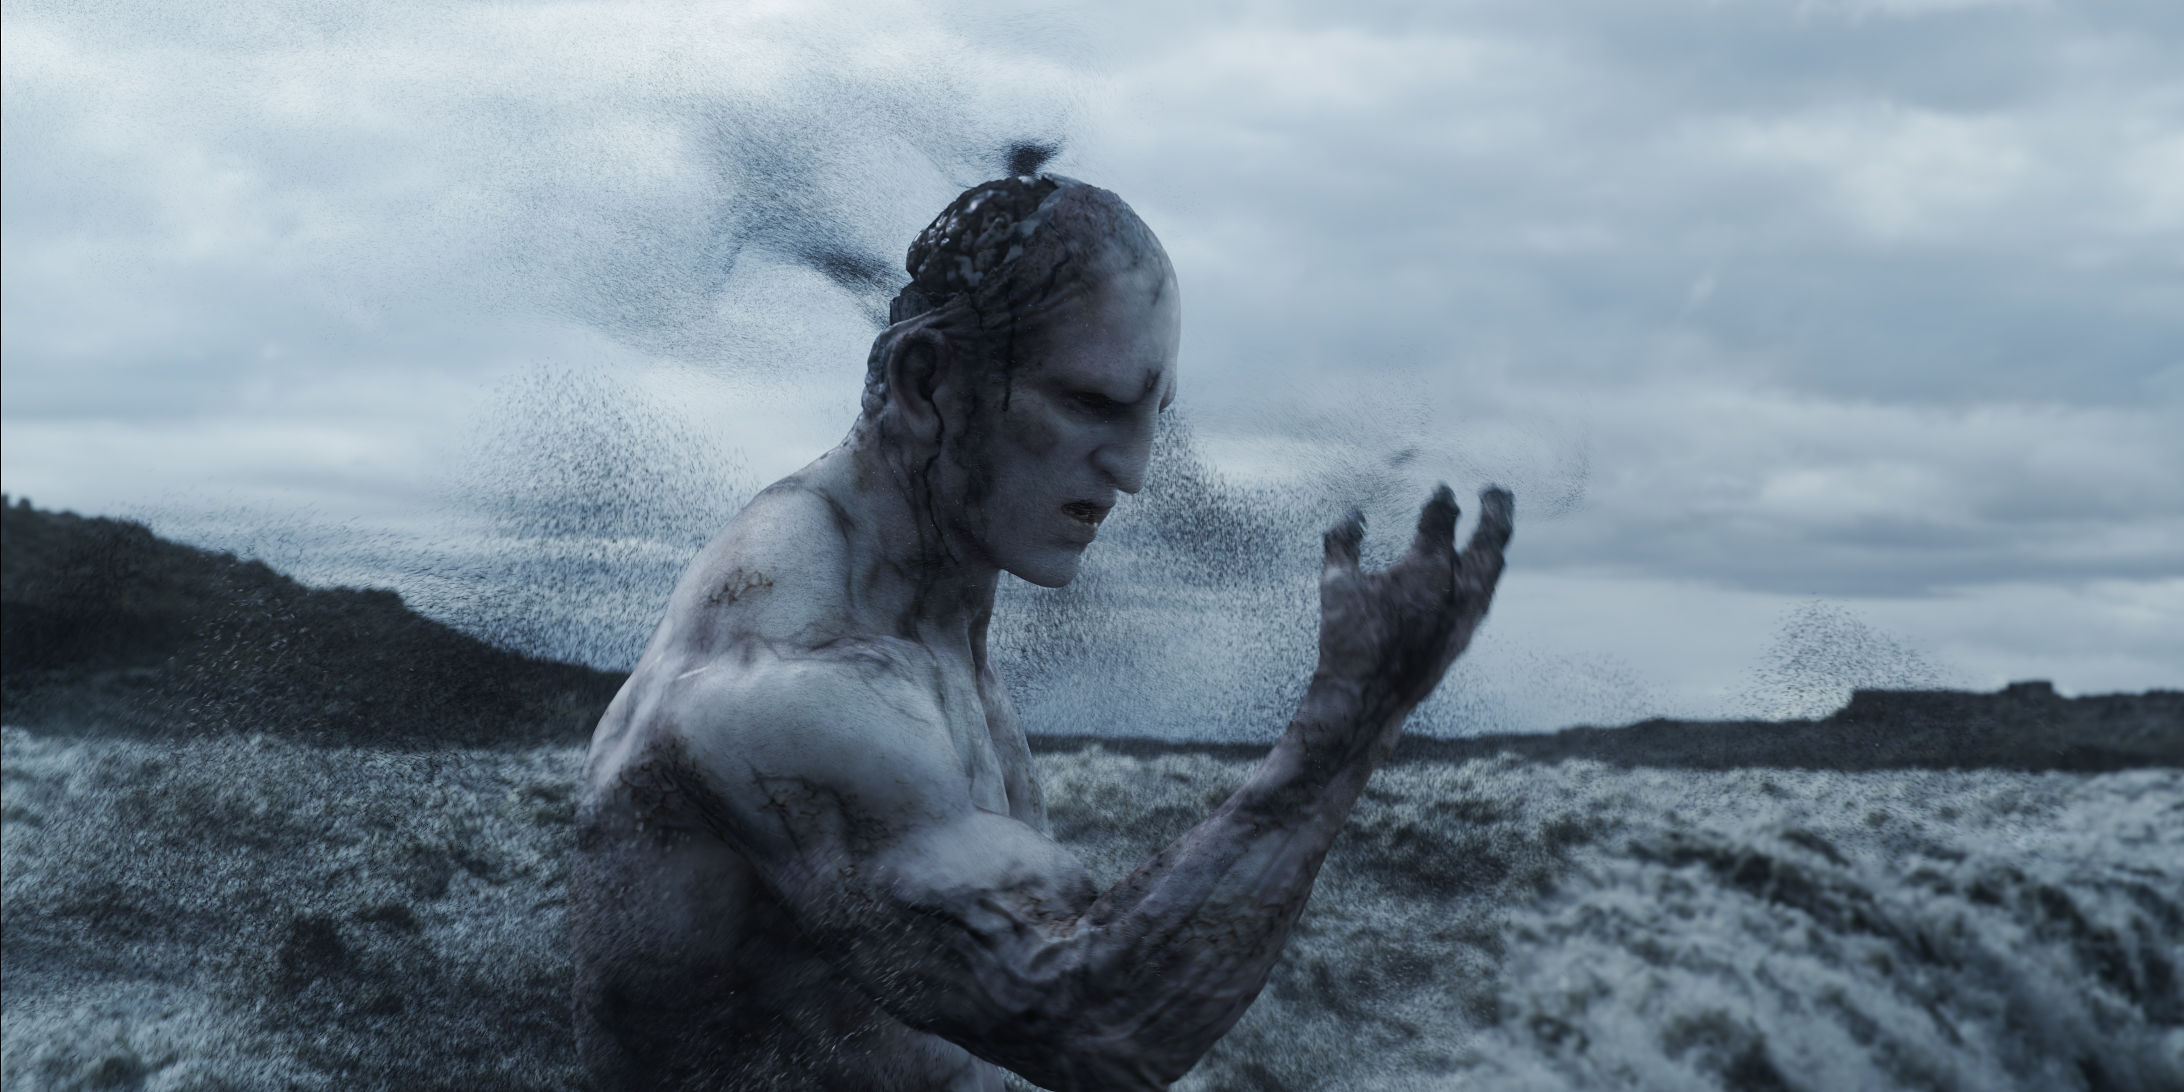 Prometheus/Alien Franchise Set to Expand